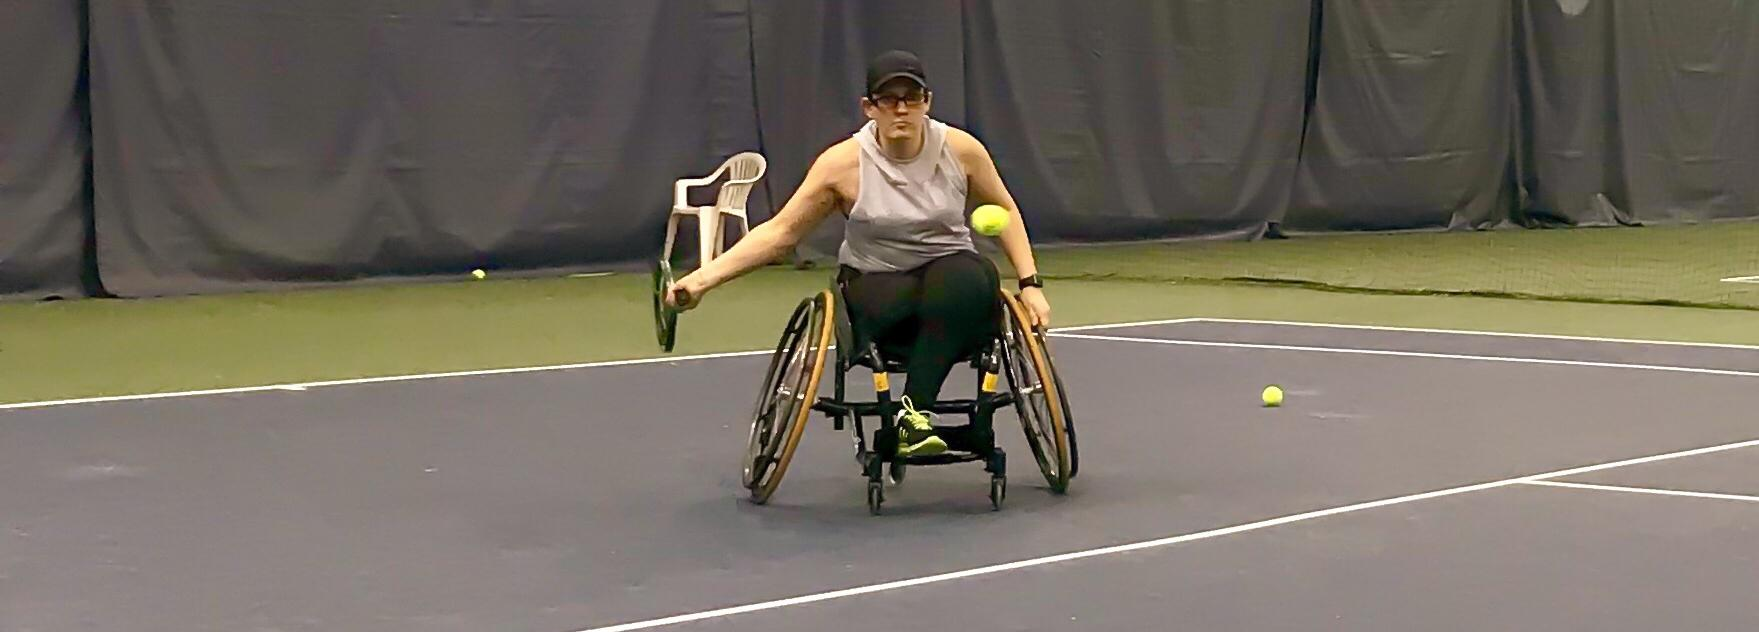 Joueuse de tennis en fauteuil roulant. Click here to play video.